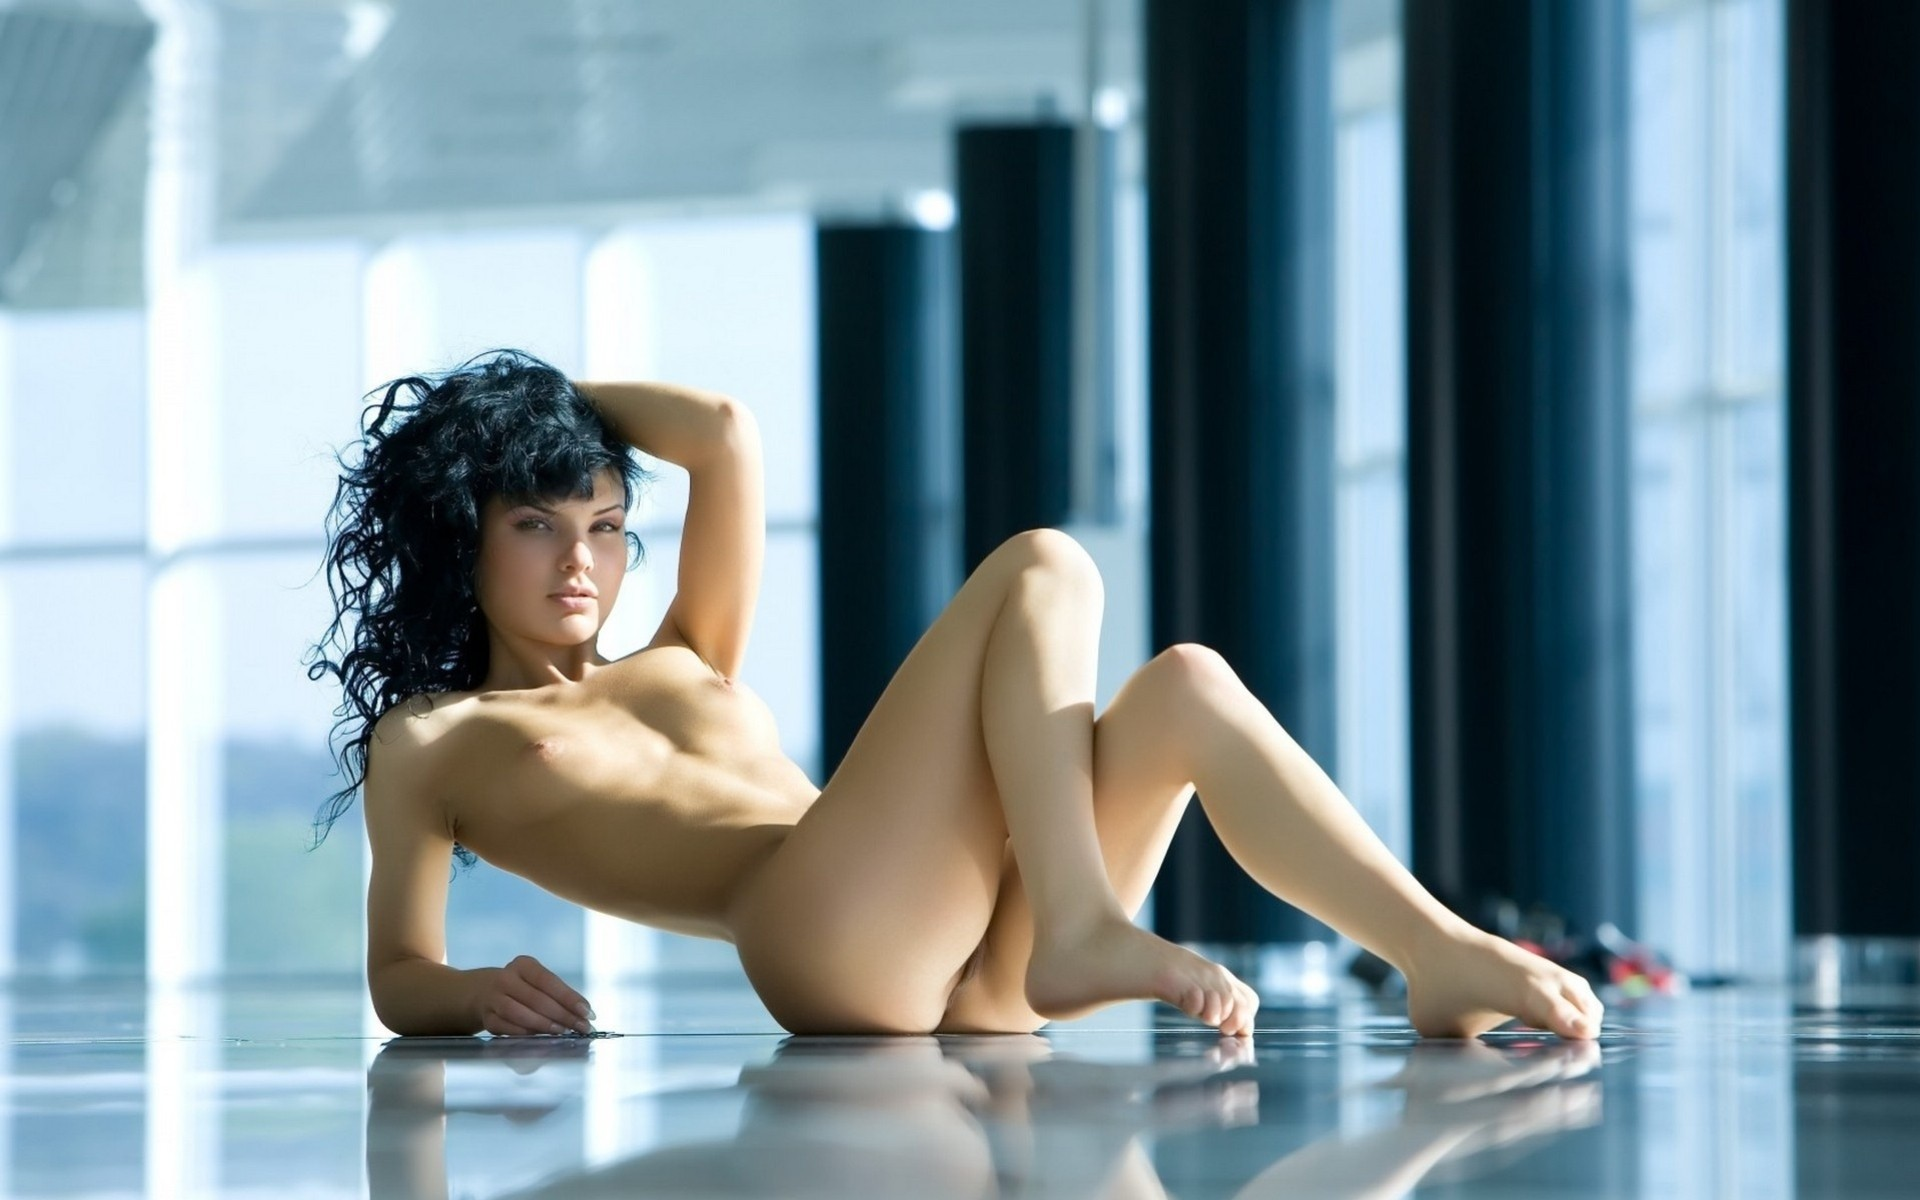 affair-technology-nude-girl